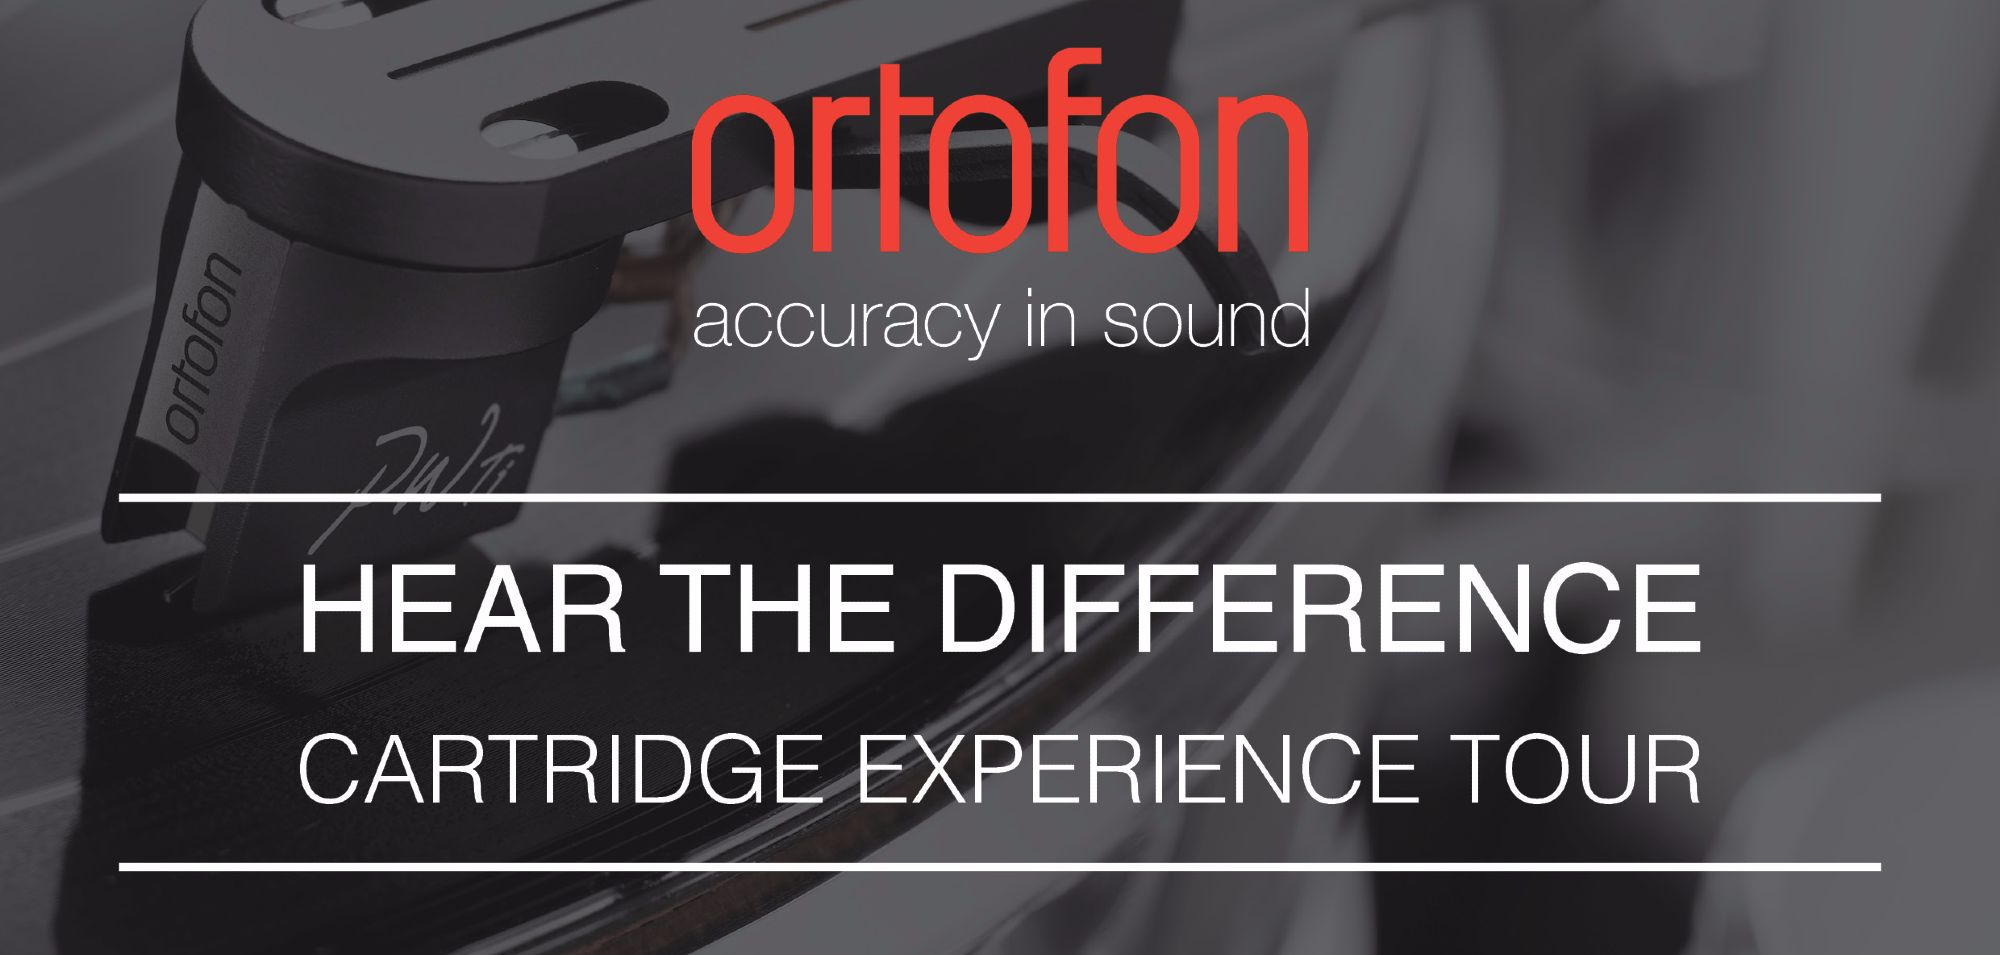 Open Day Ortofon -  The Cartridge Experience Tour - Saturday 13th July